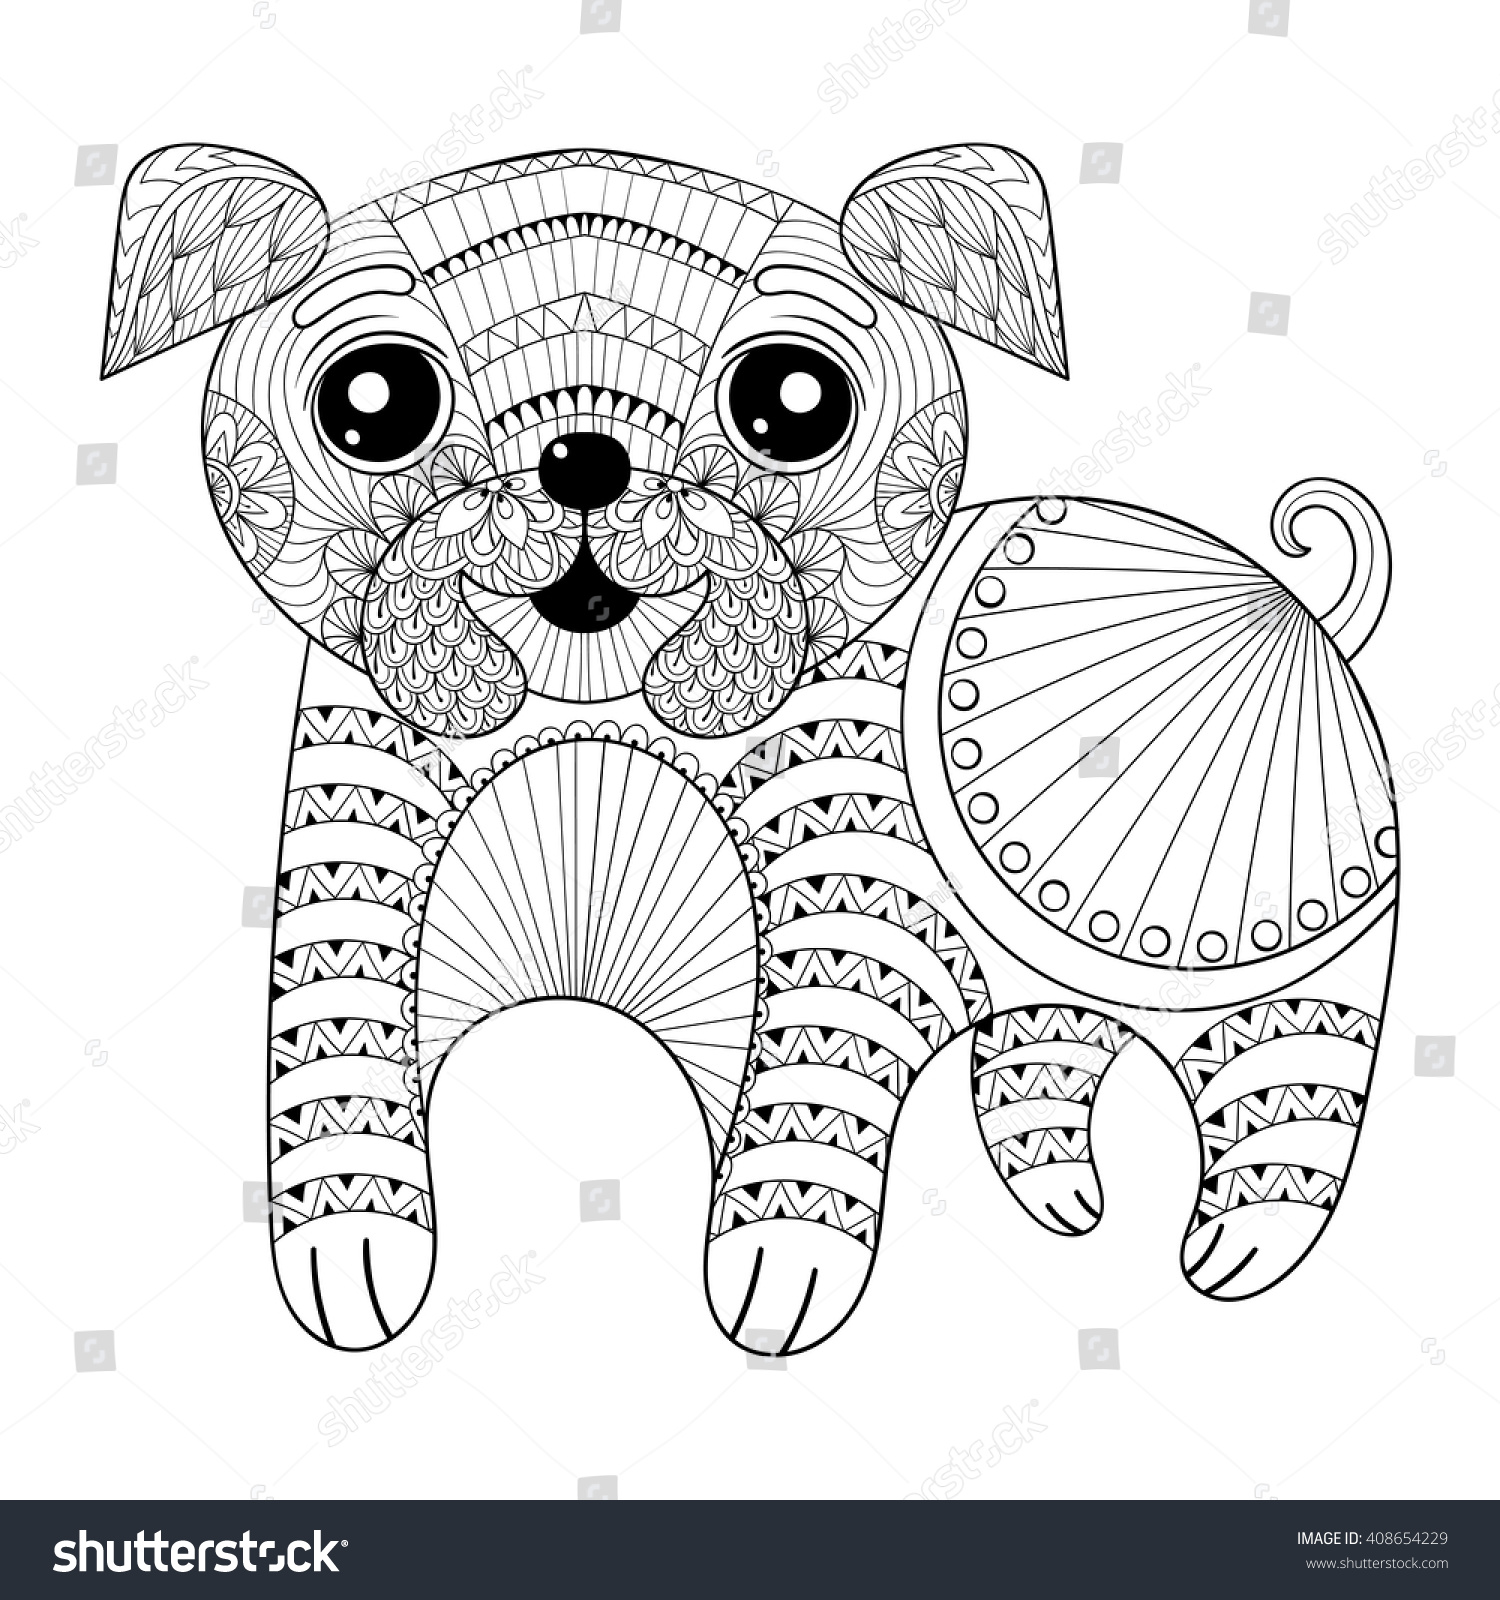 Zentangle Hand Drawing Dog Antistress Coloring Stock Vector ...